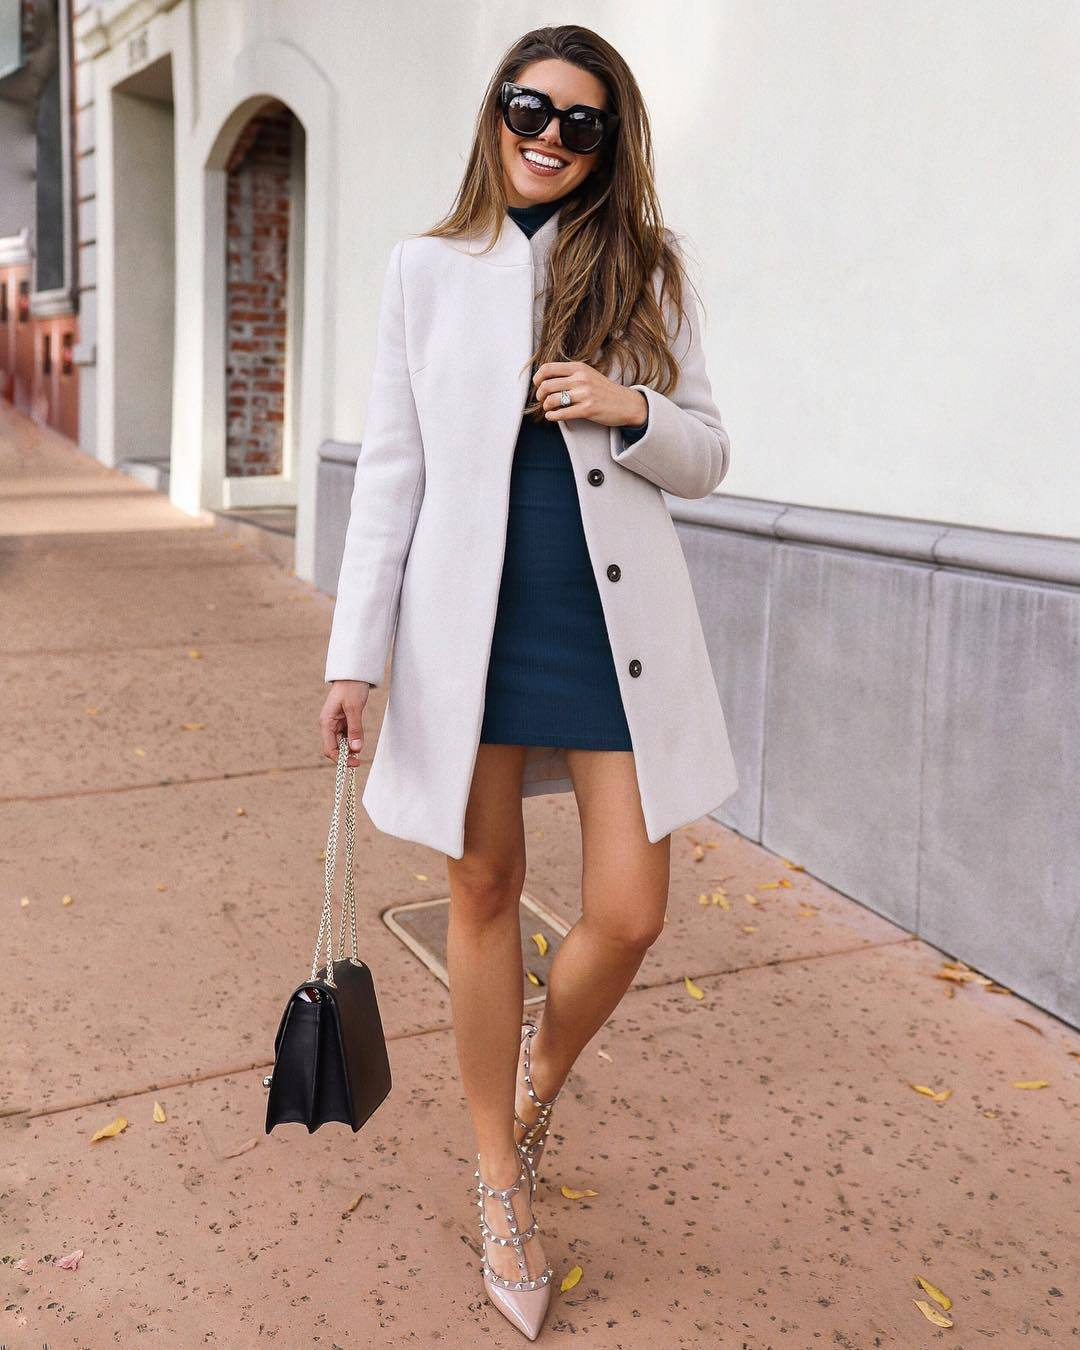 shoes high heel pumps black bag white coat blue dress turtleneck dress sunglasses